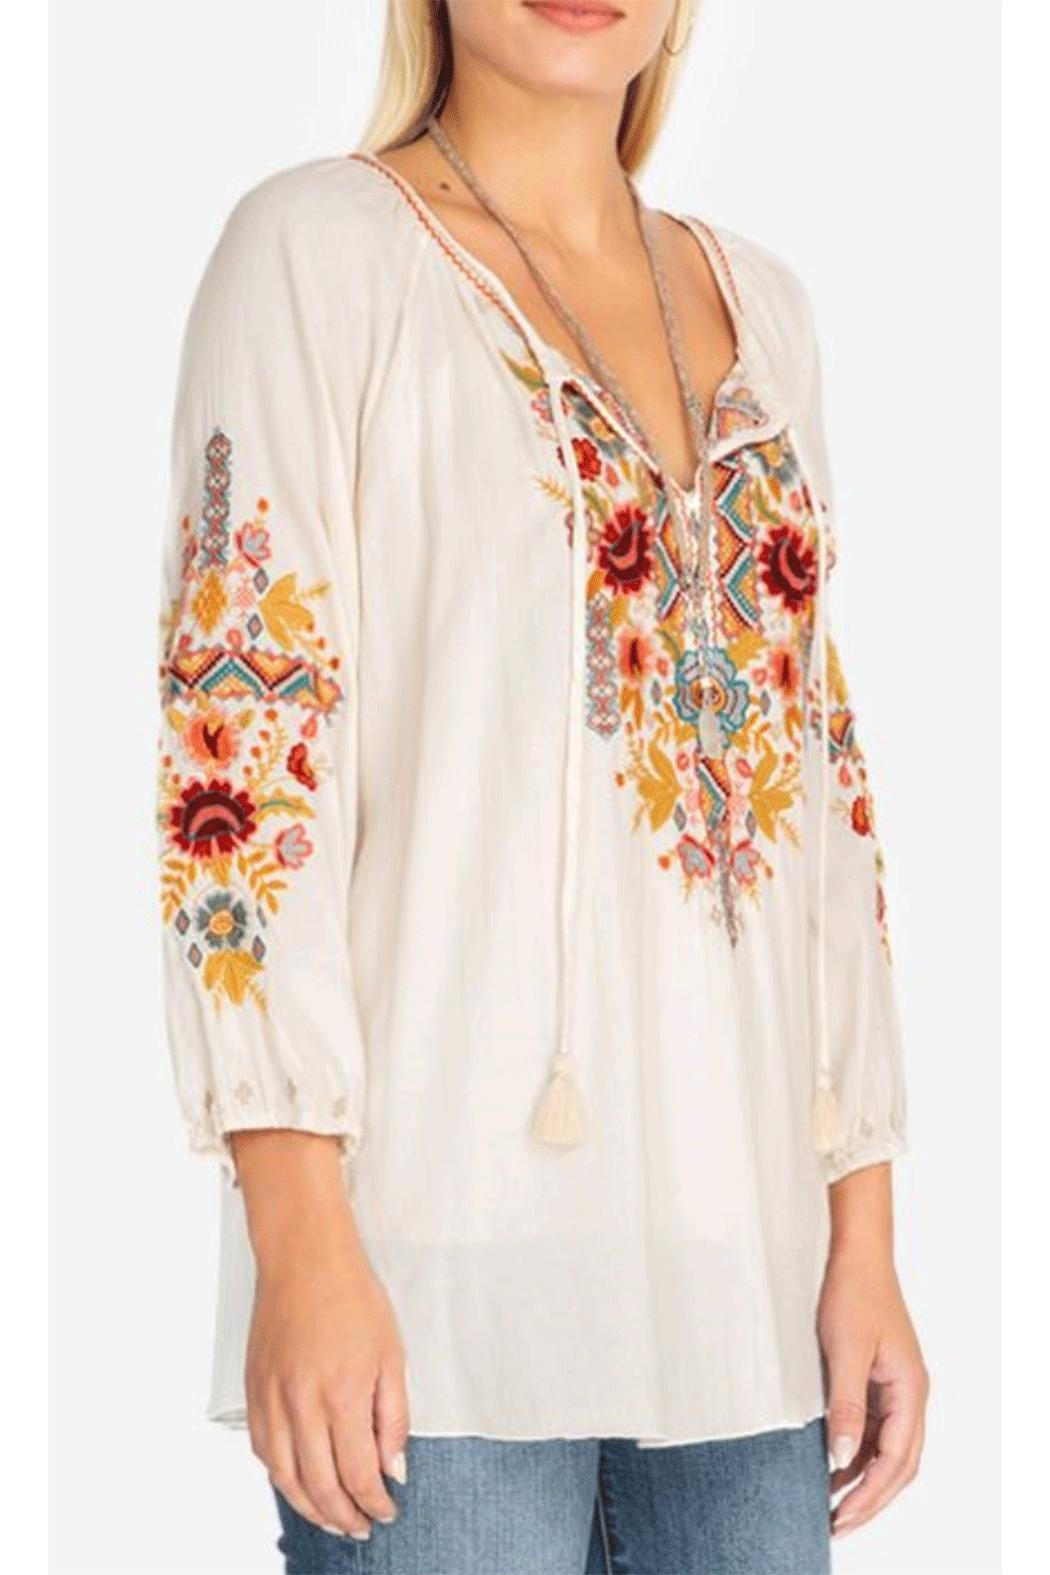 Johnny Was Peasant Blouse - Front Full Image